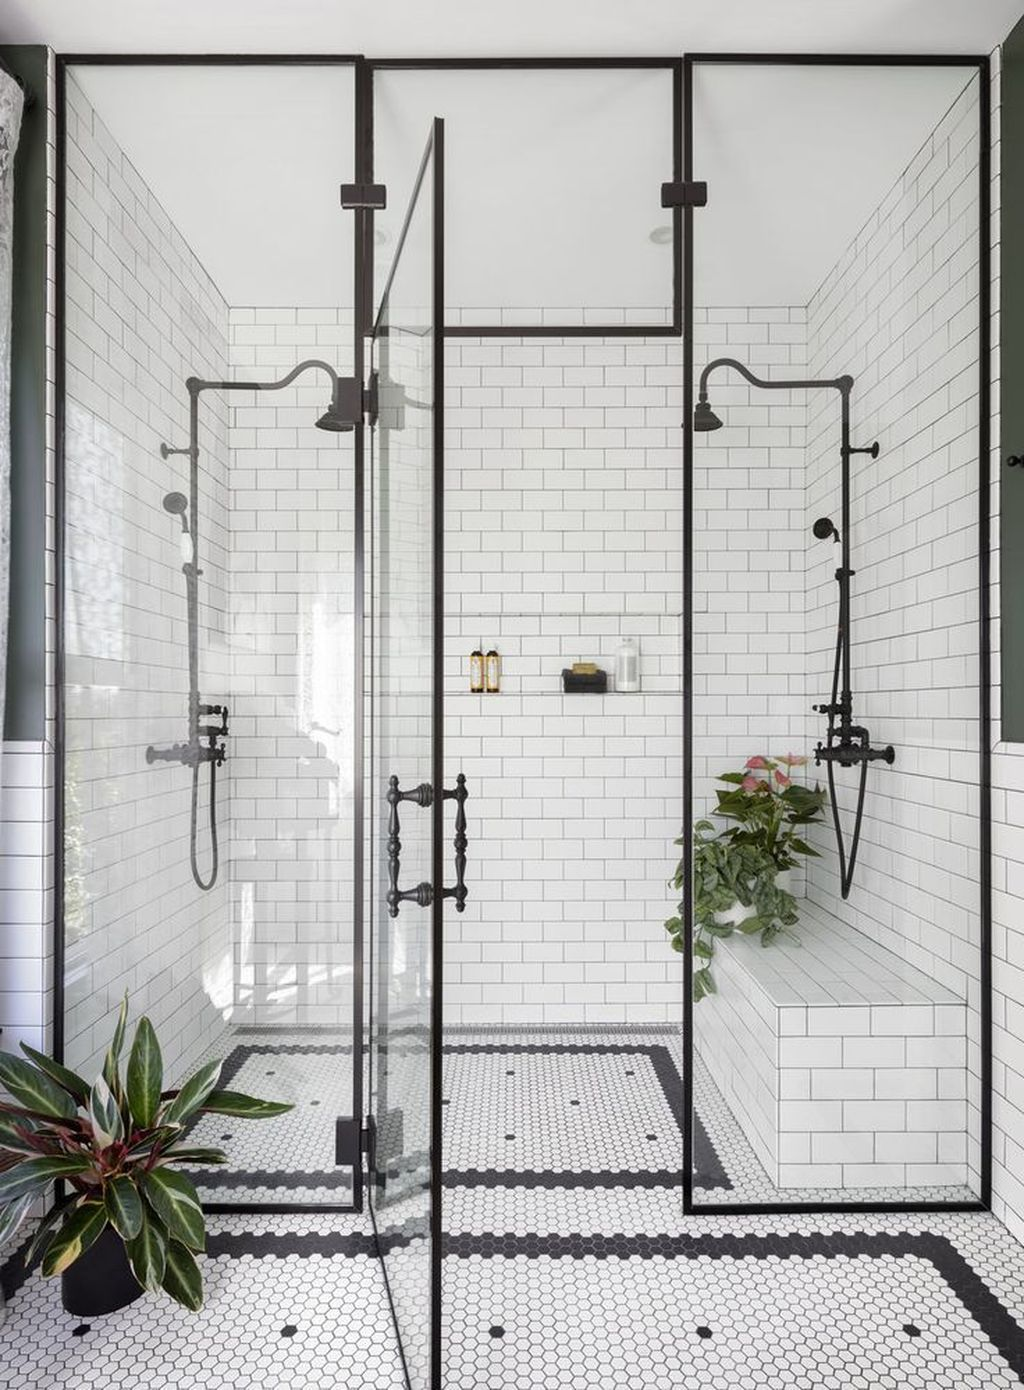 Amazing White Tile Bathroom Design Ideas Looks Elegant 07